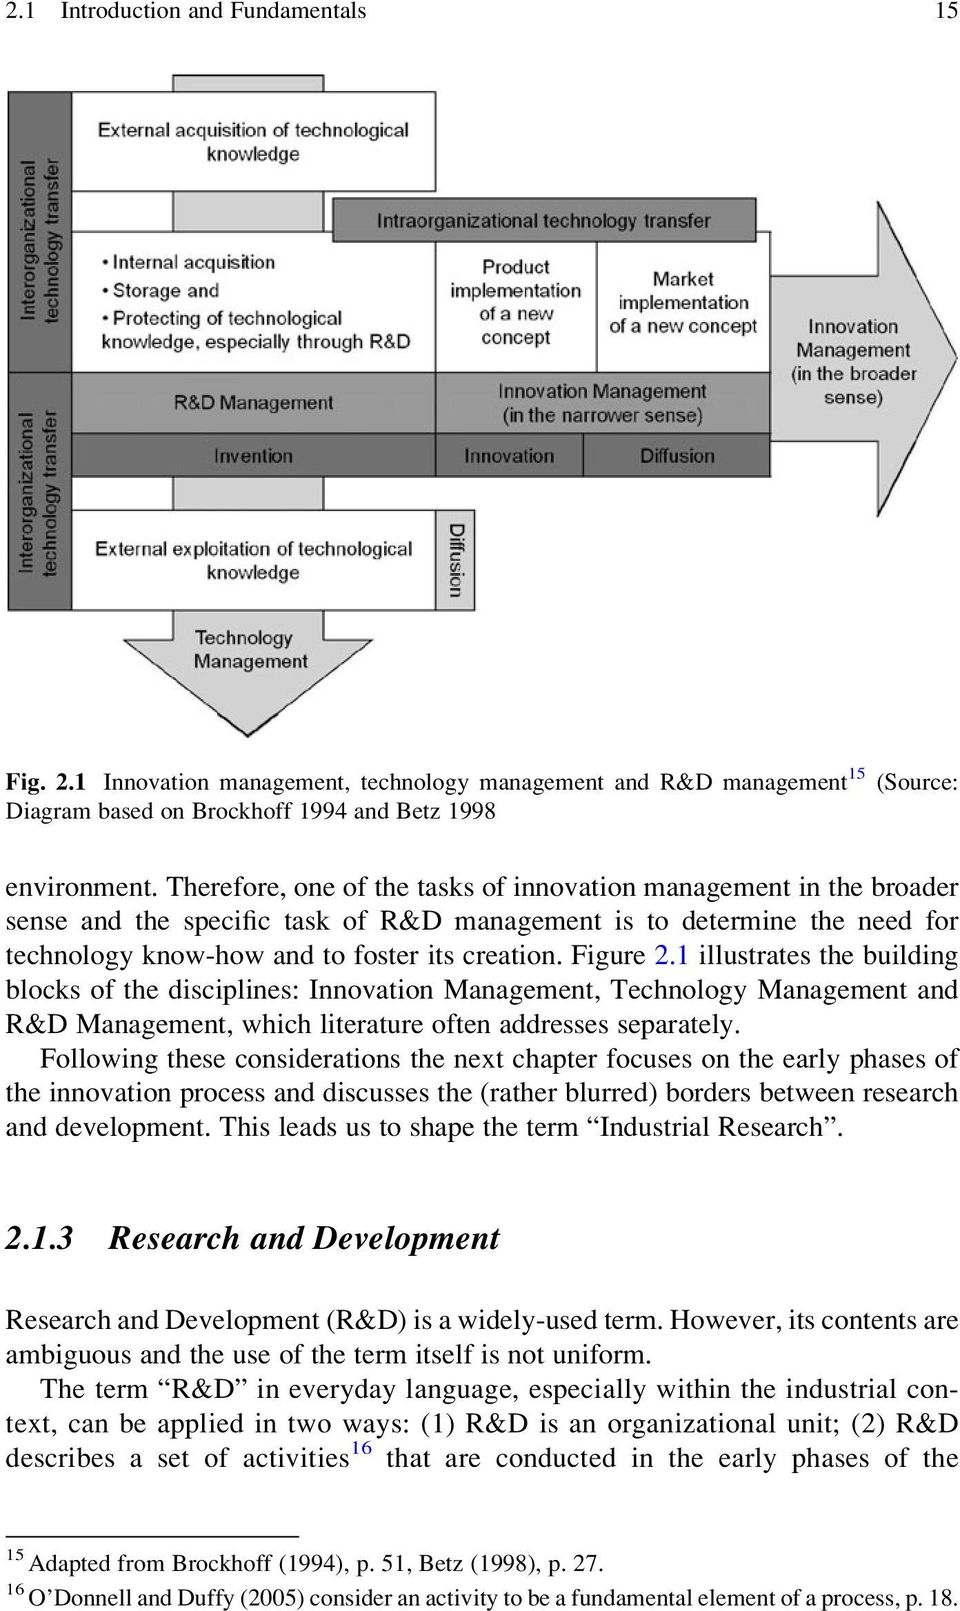 1 illustrates the building blocks of the disciplines: Innovation Management, Technology Management and R&D Management, which literature often addresses separately.